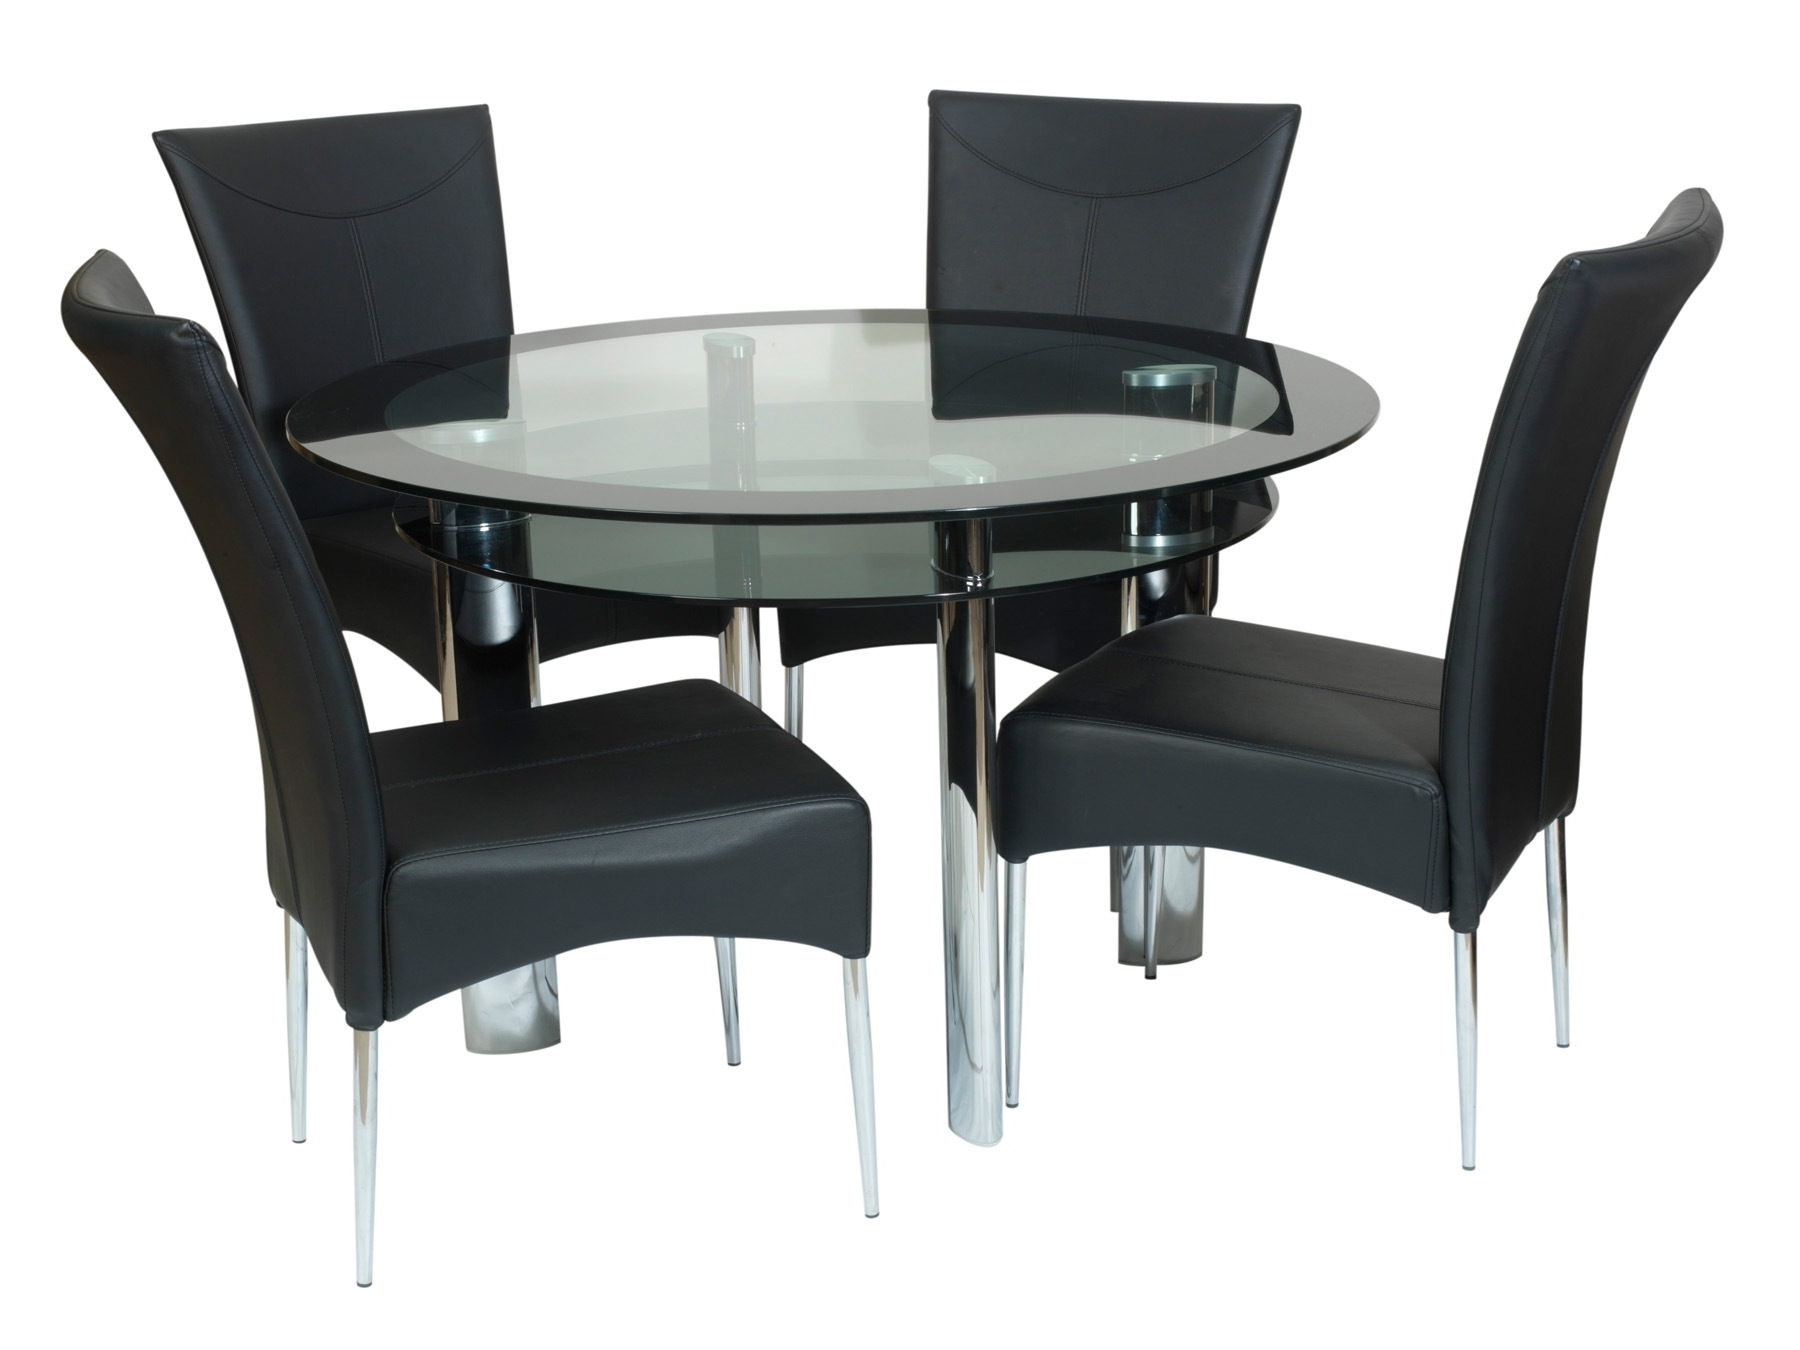 Round Black Glass Dining Tables And 4 Chairs Throughout Well Known Coco Round Black Glass Dining Table With 4 Chairs (View 22 of 25)